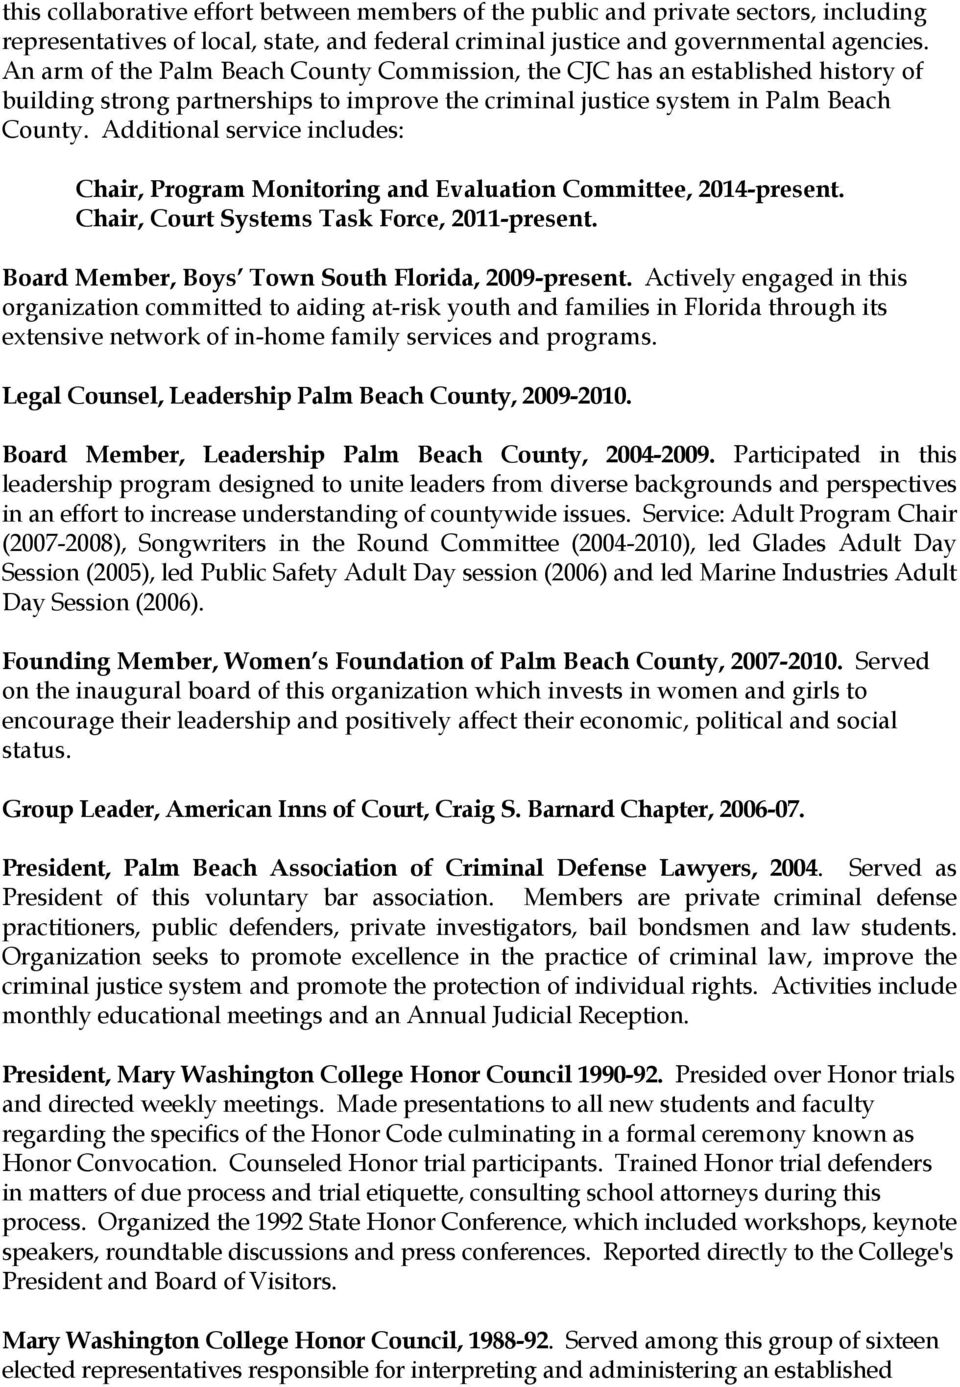 Additional service includes: Chair, Program Monitoring and Evaluation Committee, 2014-present. Chair, Court Systems Task Force, 2011-present. Board Member, Boys Town South Florida, 2009-present.